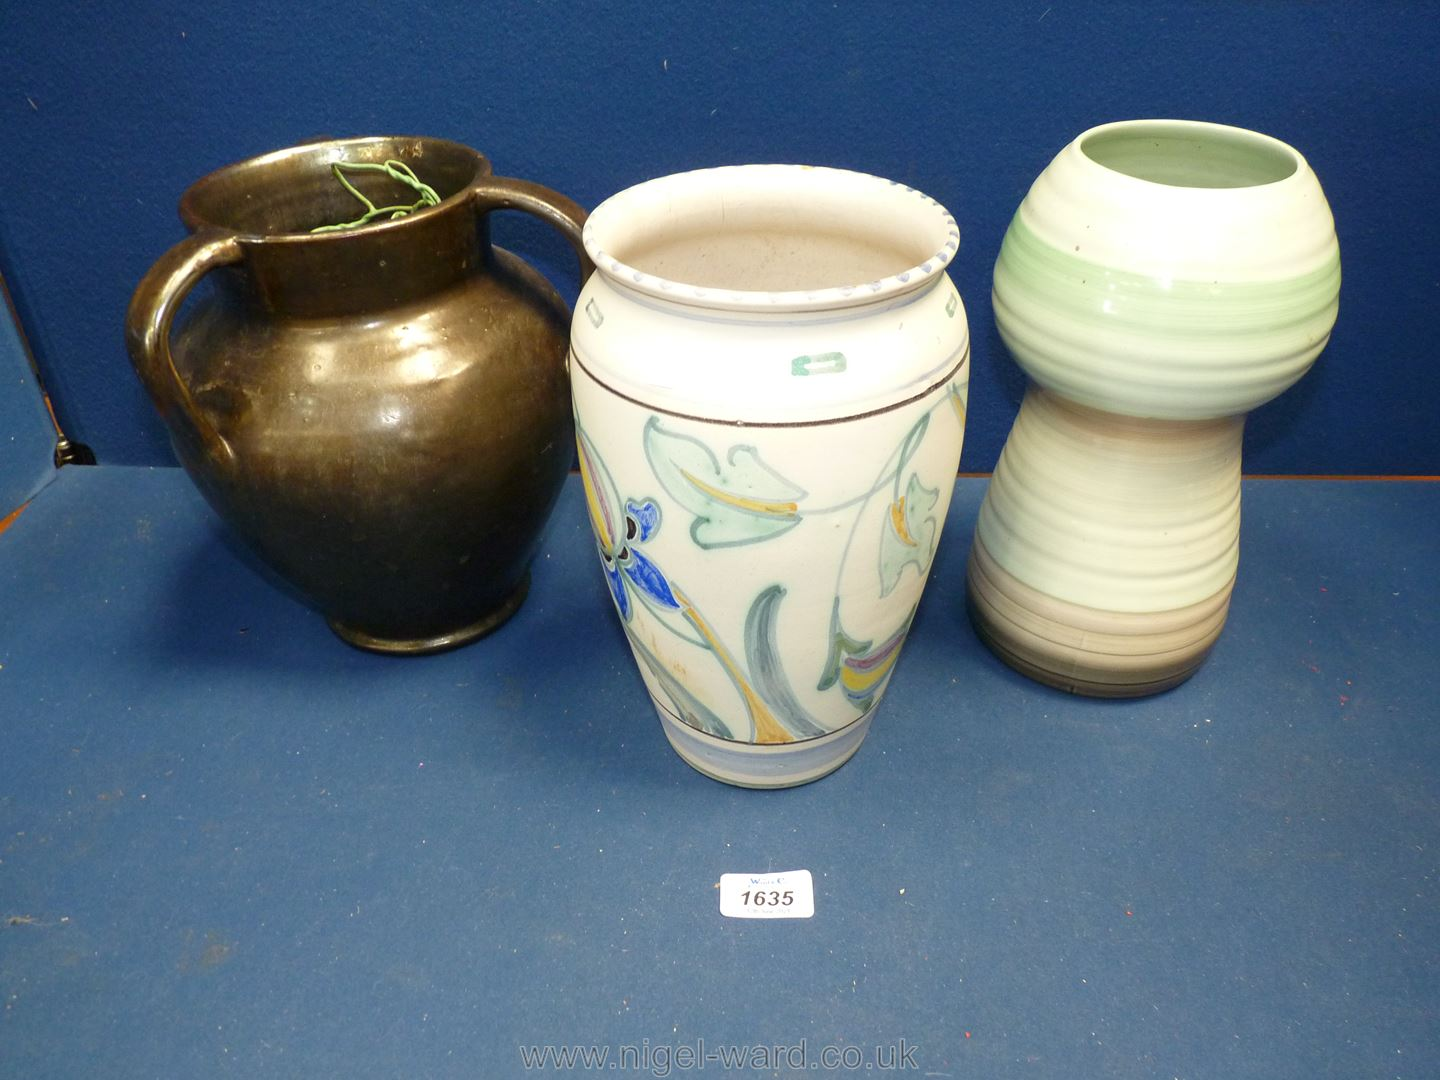 Three vases including Collard Honiton, Shelley and triple handled with metallic finish.